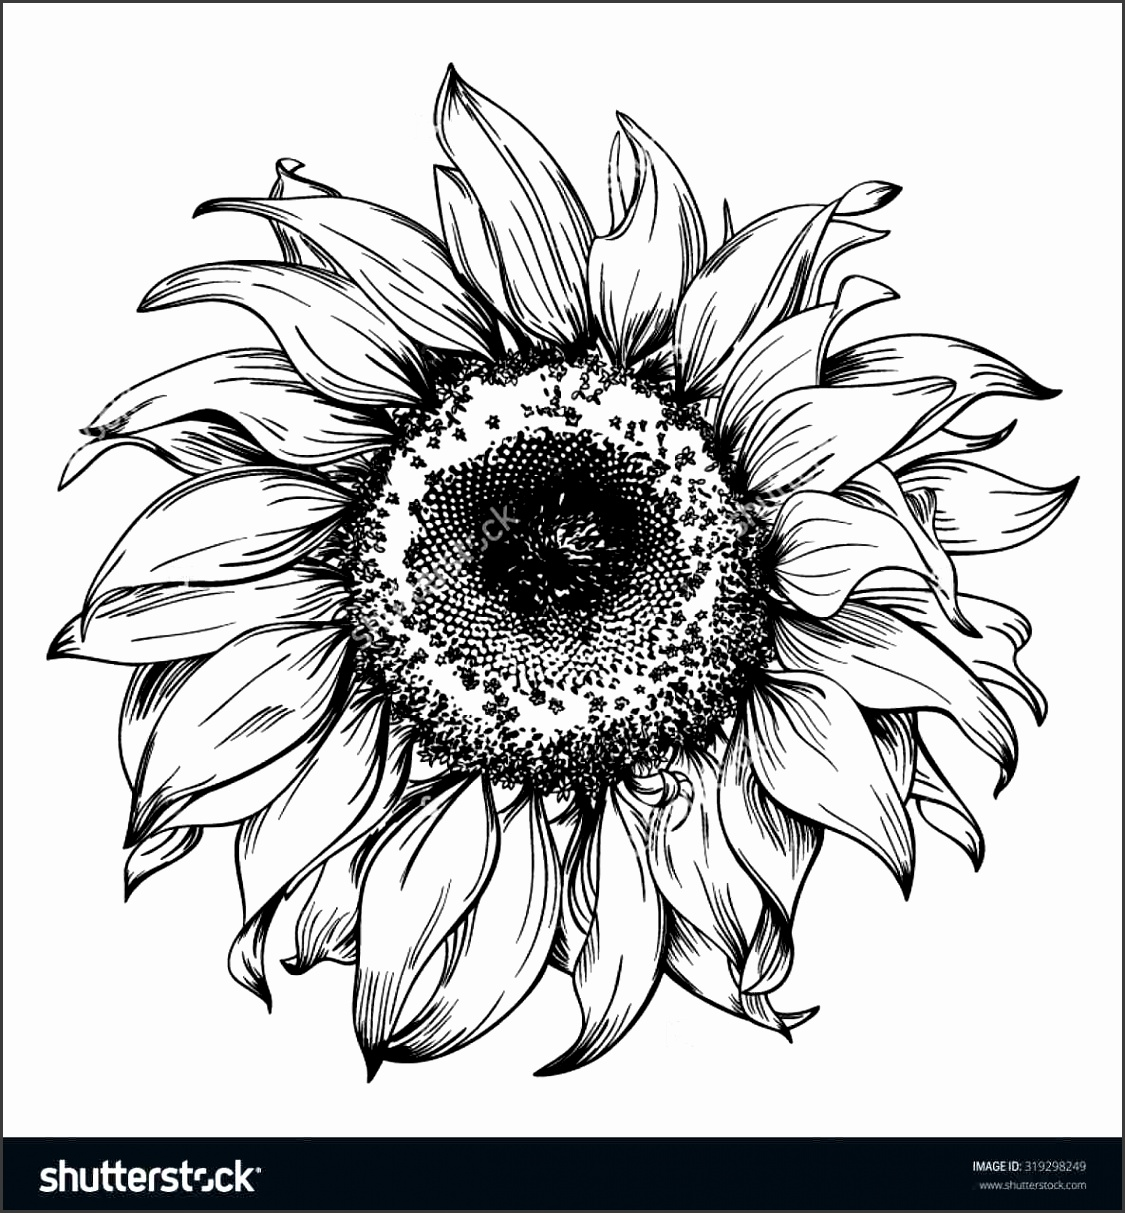 Download image black and white